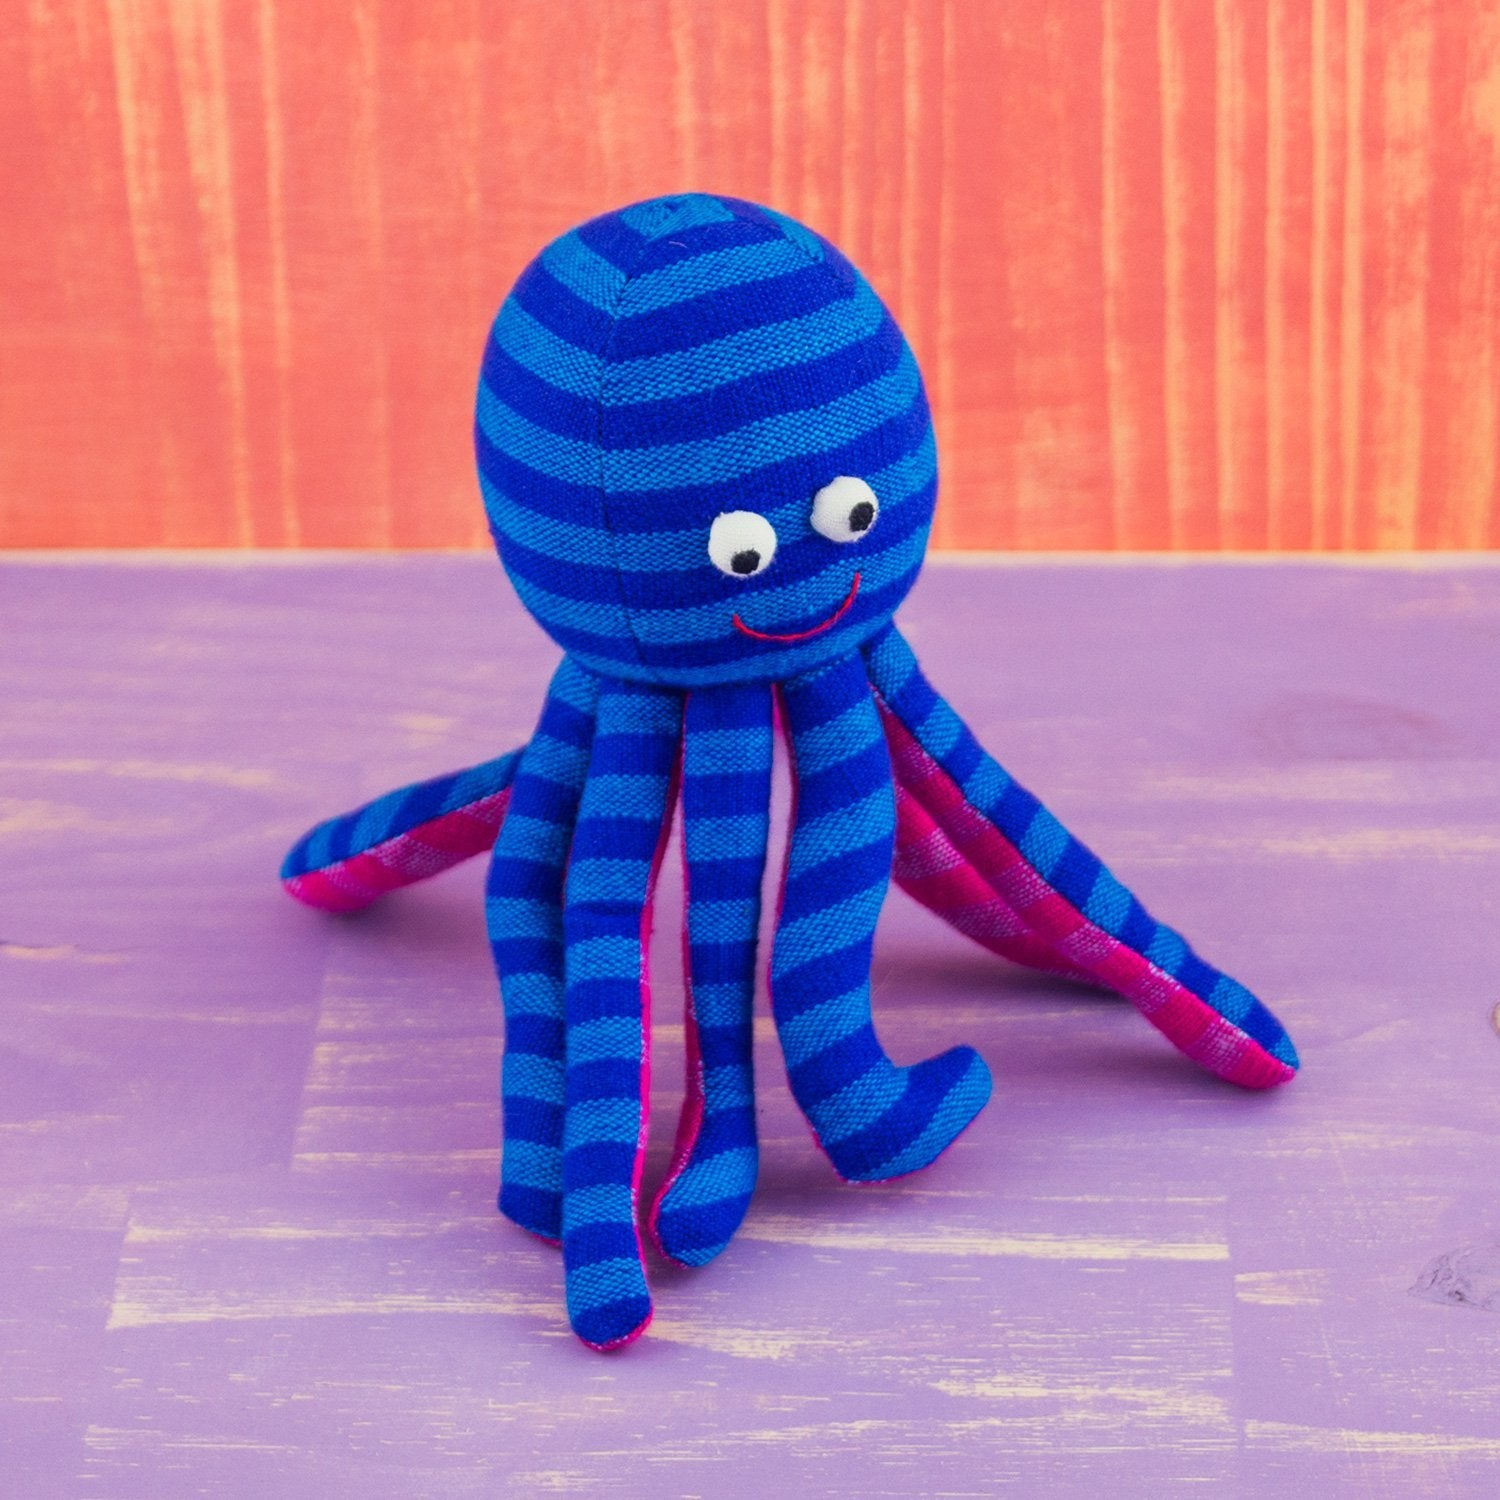 blue striped outside, pink striped underside googly eyed, octopus shaped doll